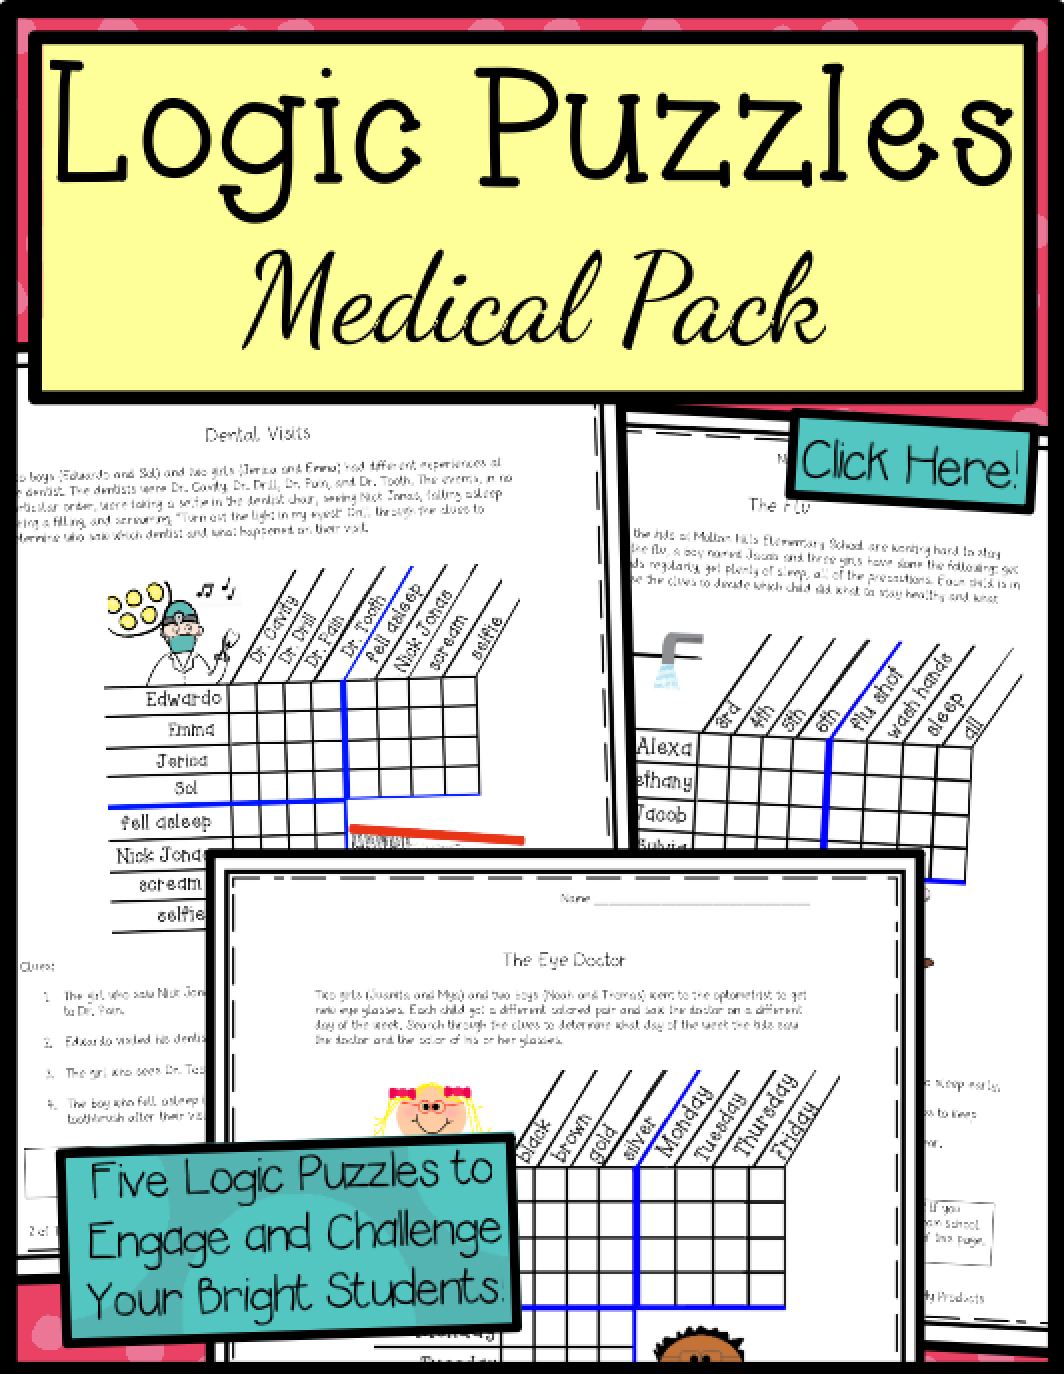 printable logic puzzle worksheets for kids will provide hard critical thinking challenges with answers and grids these brain teasers make learning fun with